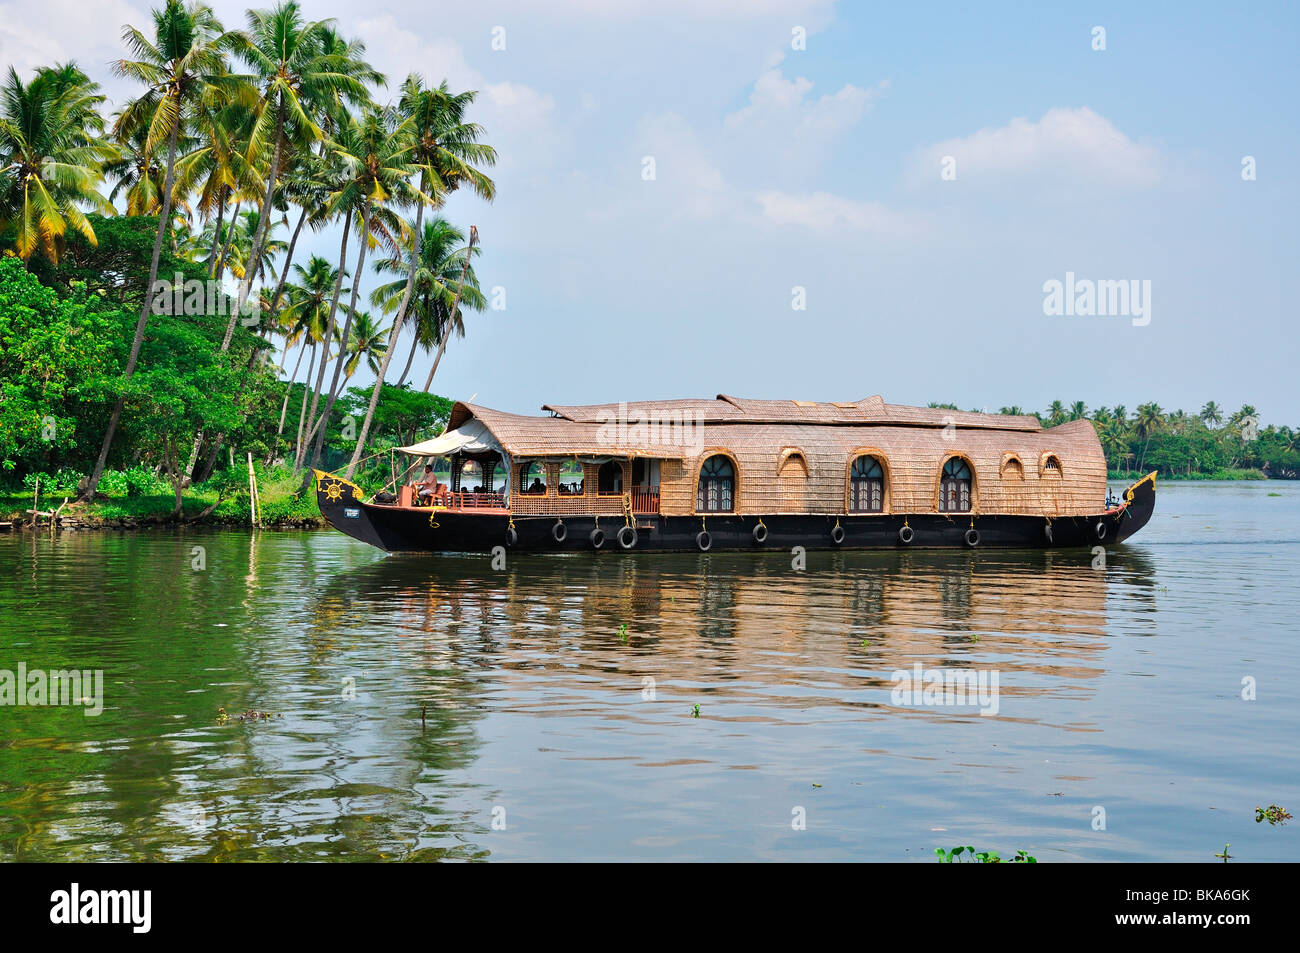 House boat of  Kerala - Stock Image